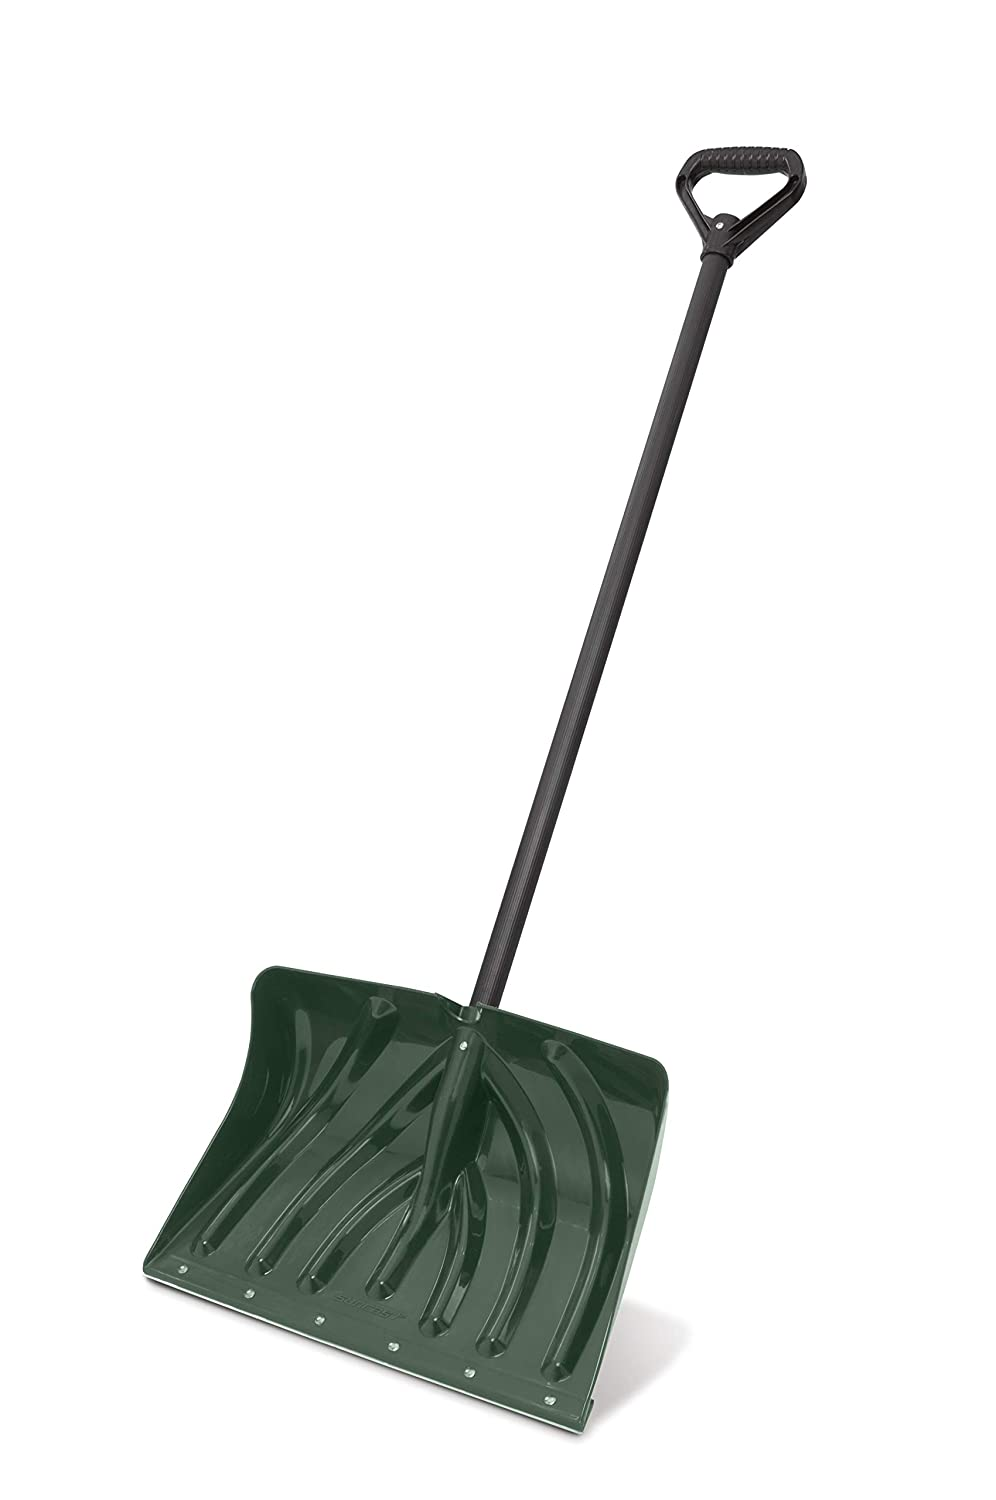 Top 10 Best Snow Shovel (2020 Reviews & Buying Guide) 6